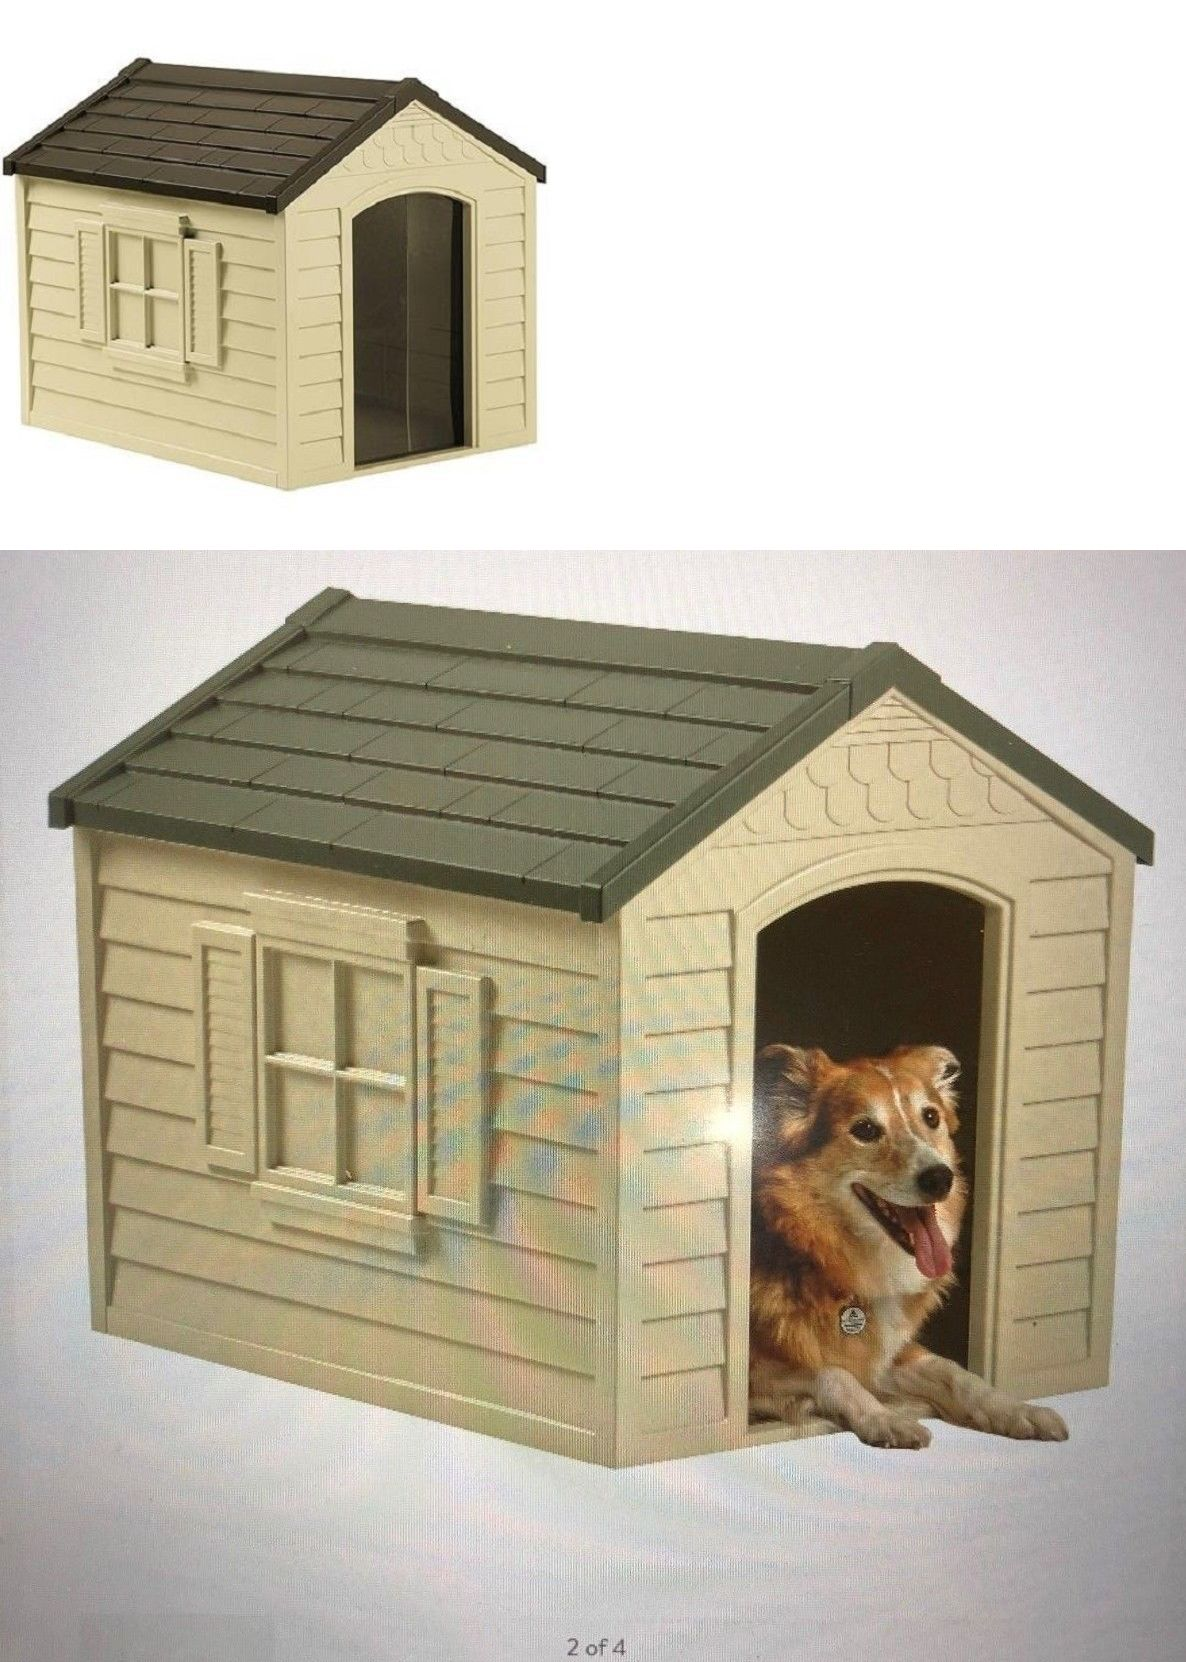 Dog Houses 108884 Suncast Dh250 Dog House Snap Together Assembly